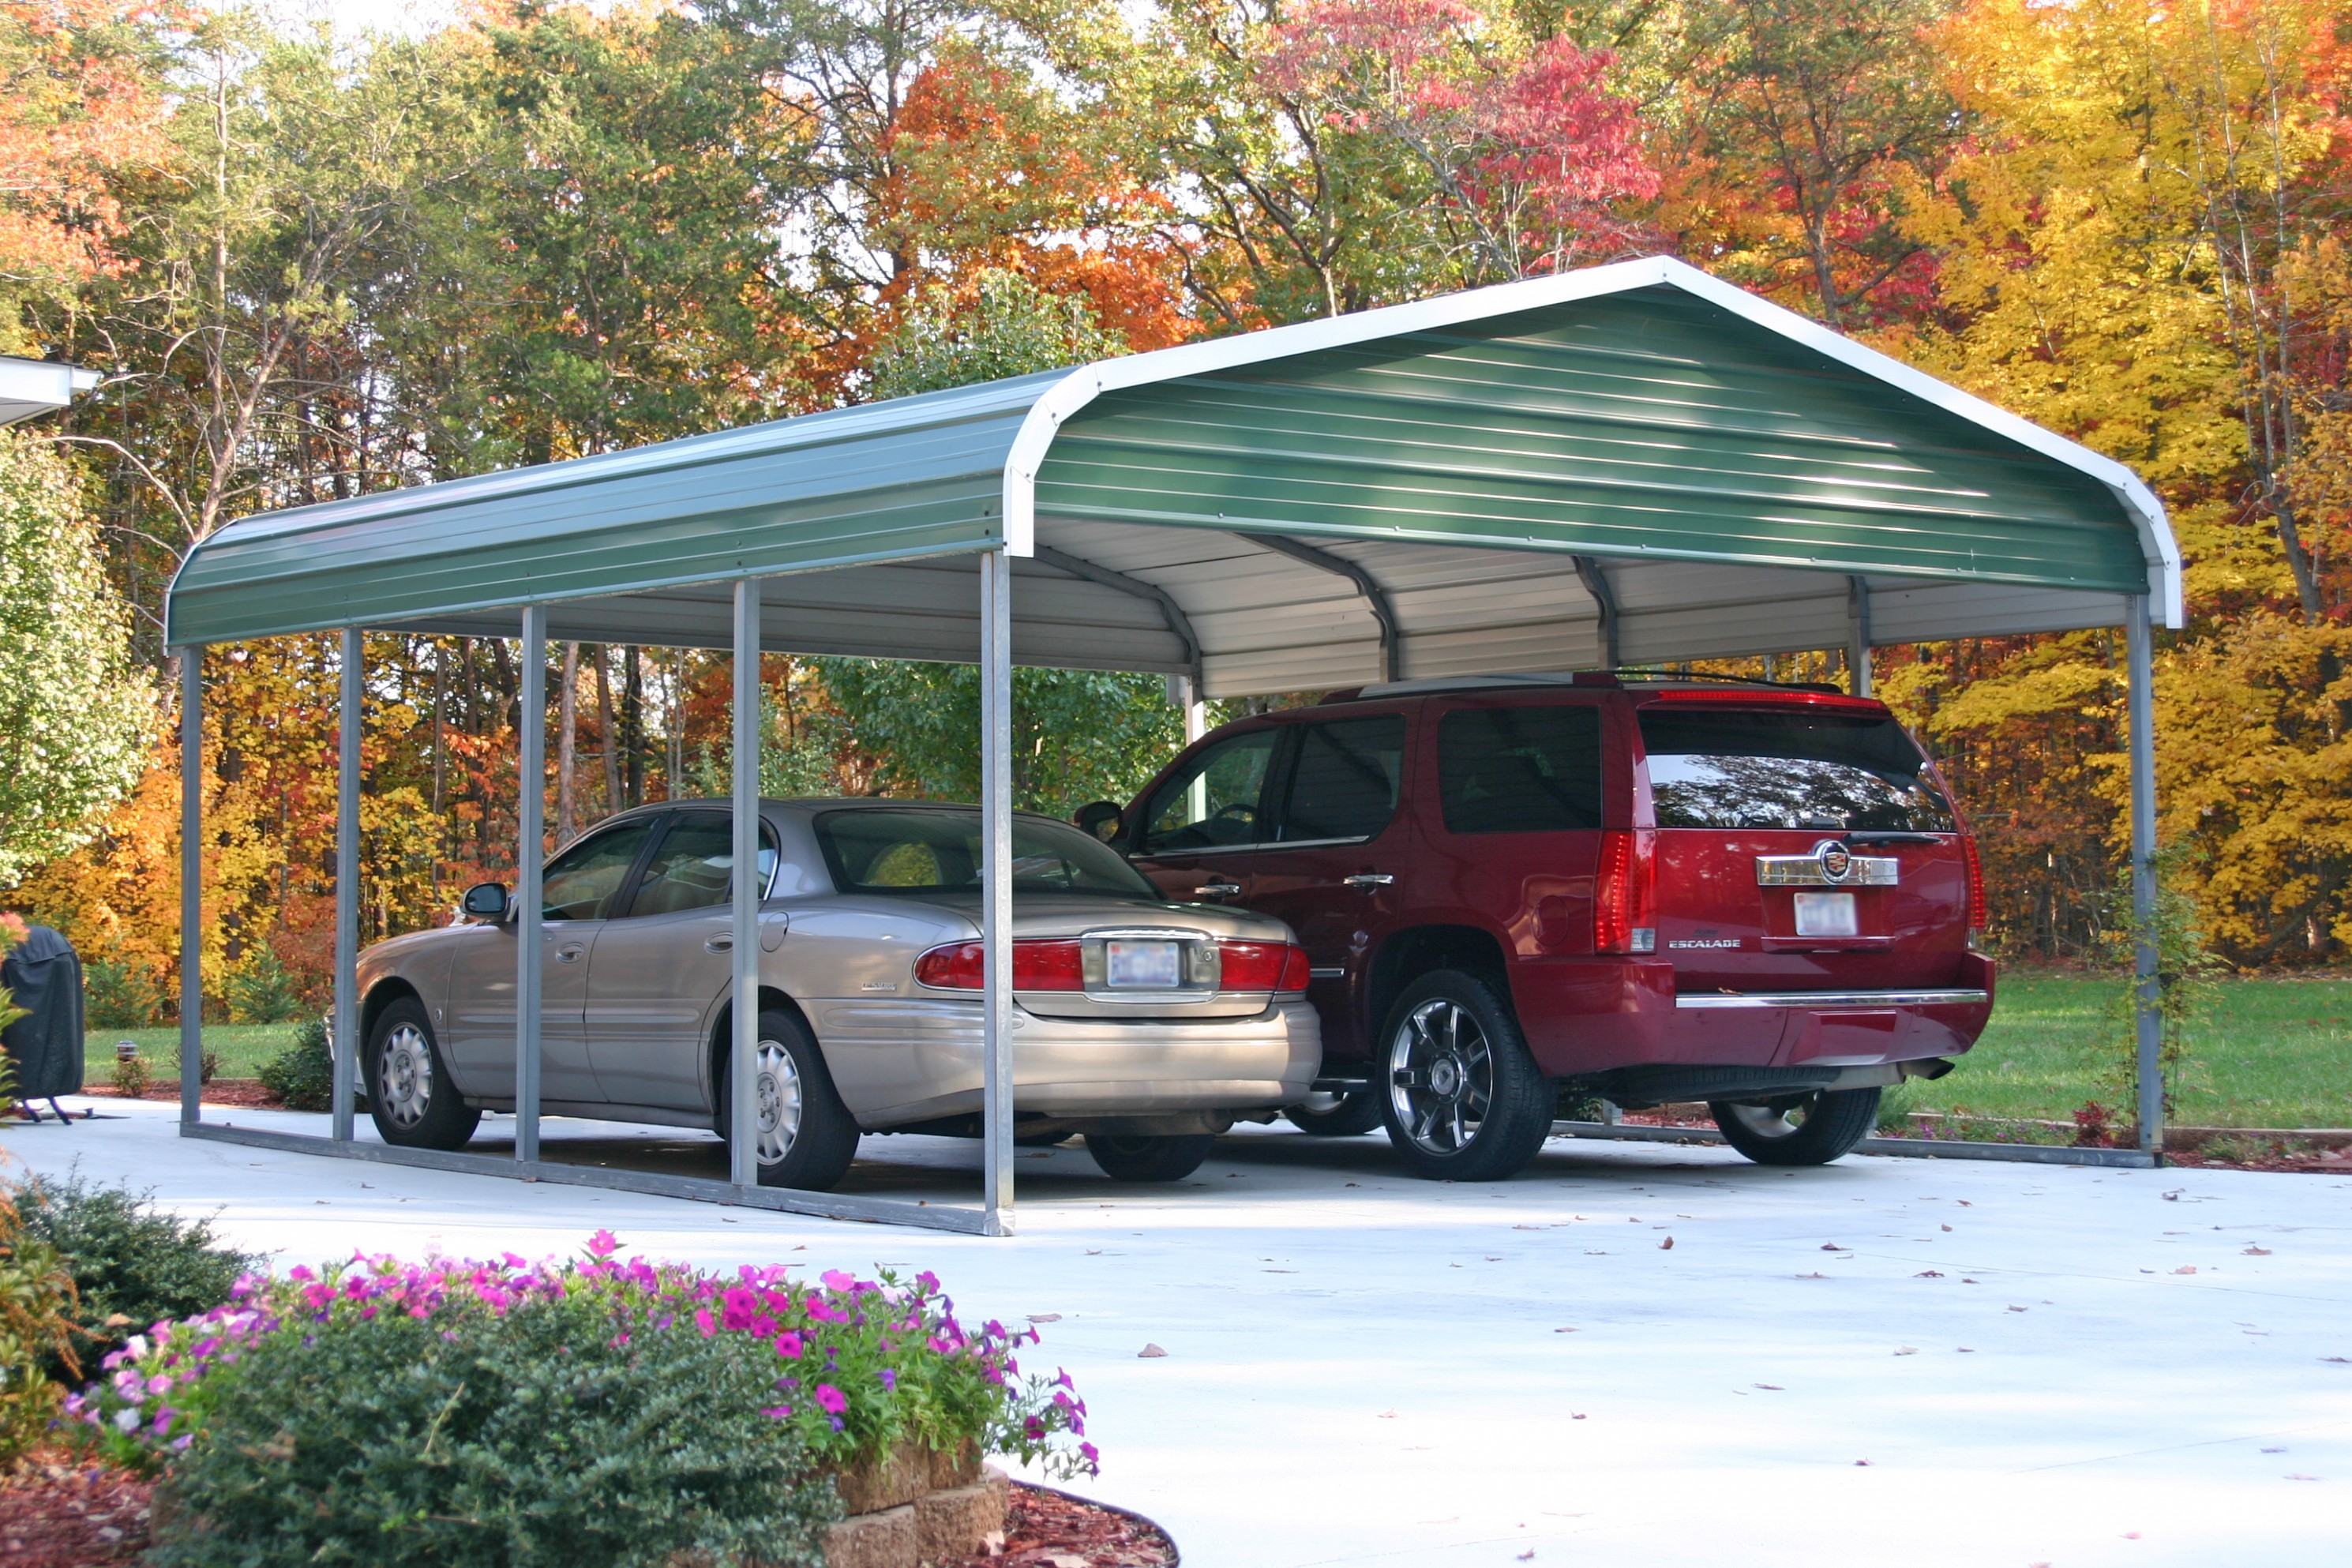 Ten Facts About 14 Carport For Sale That Will Blow Your Mind | 14 carport for sale